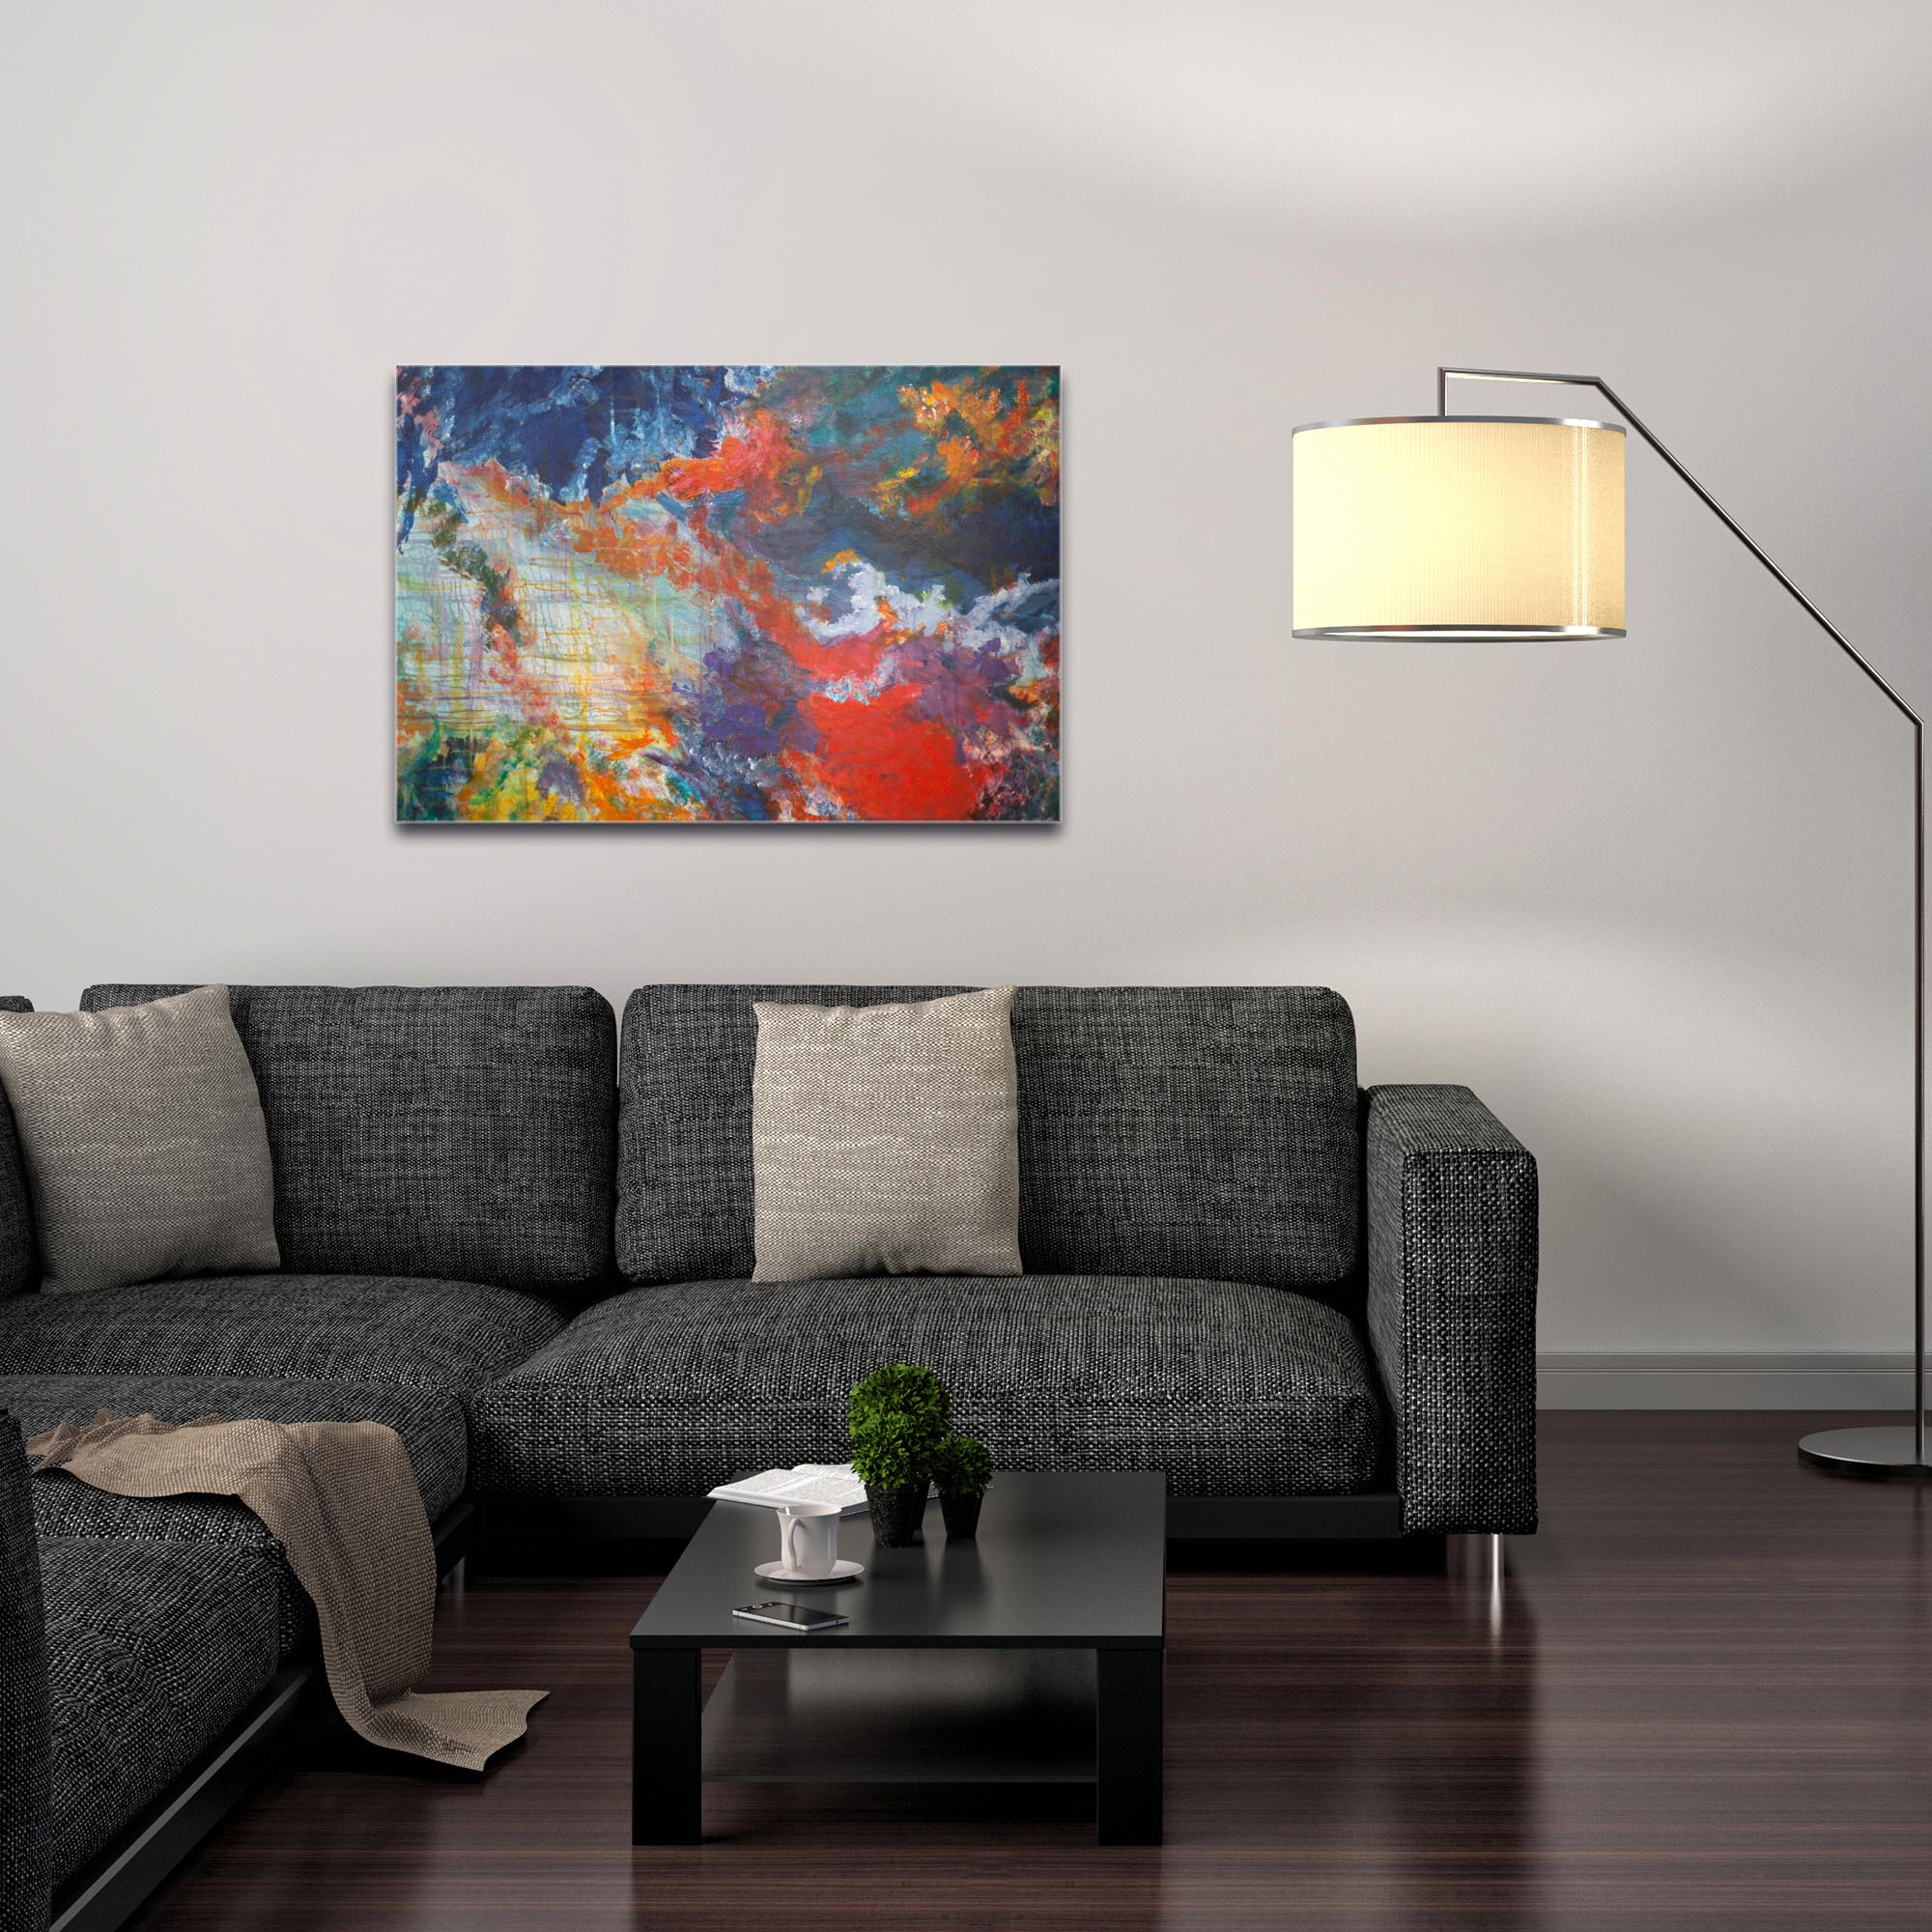 Abstract Wall Art 'Clouds of Color' - Urban Decor on Metal or Plexiglass - Image 3